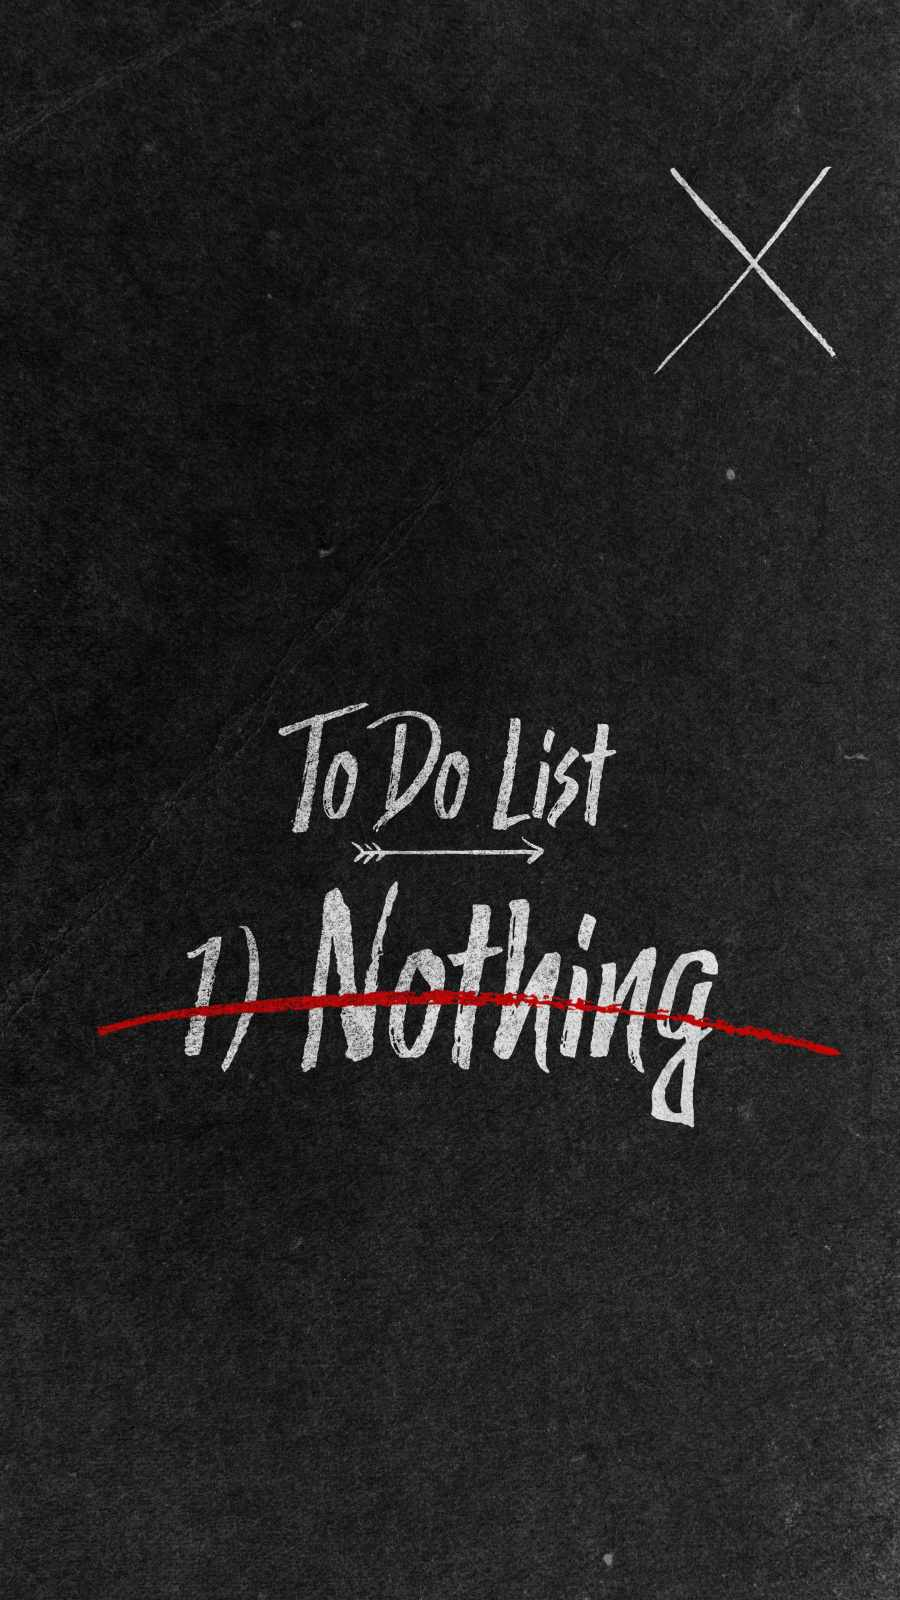 To Do List iPhone Wallpaper